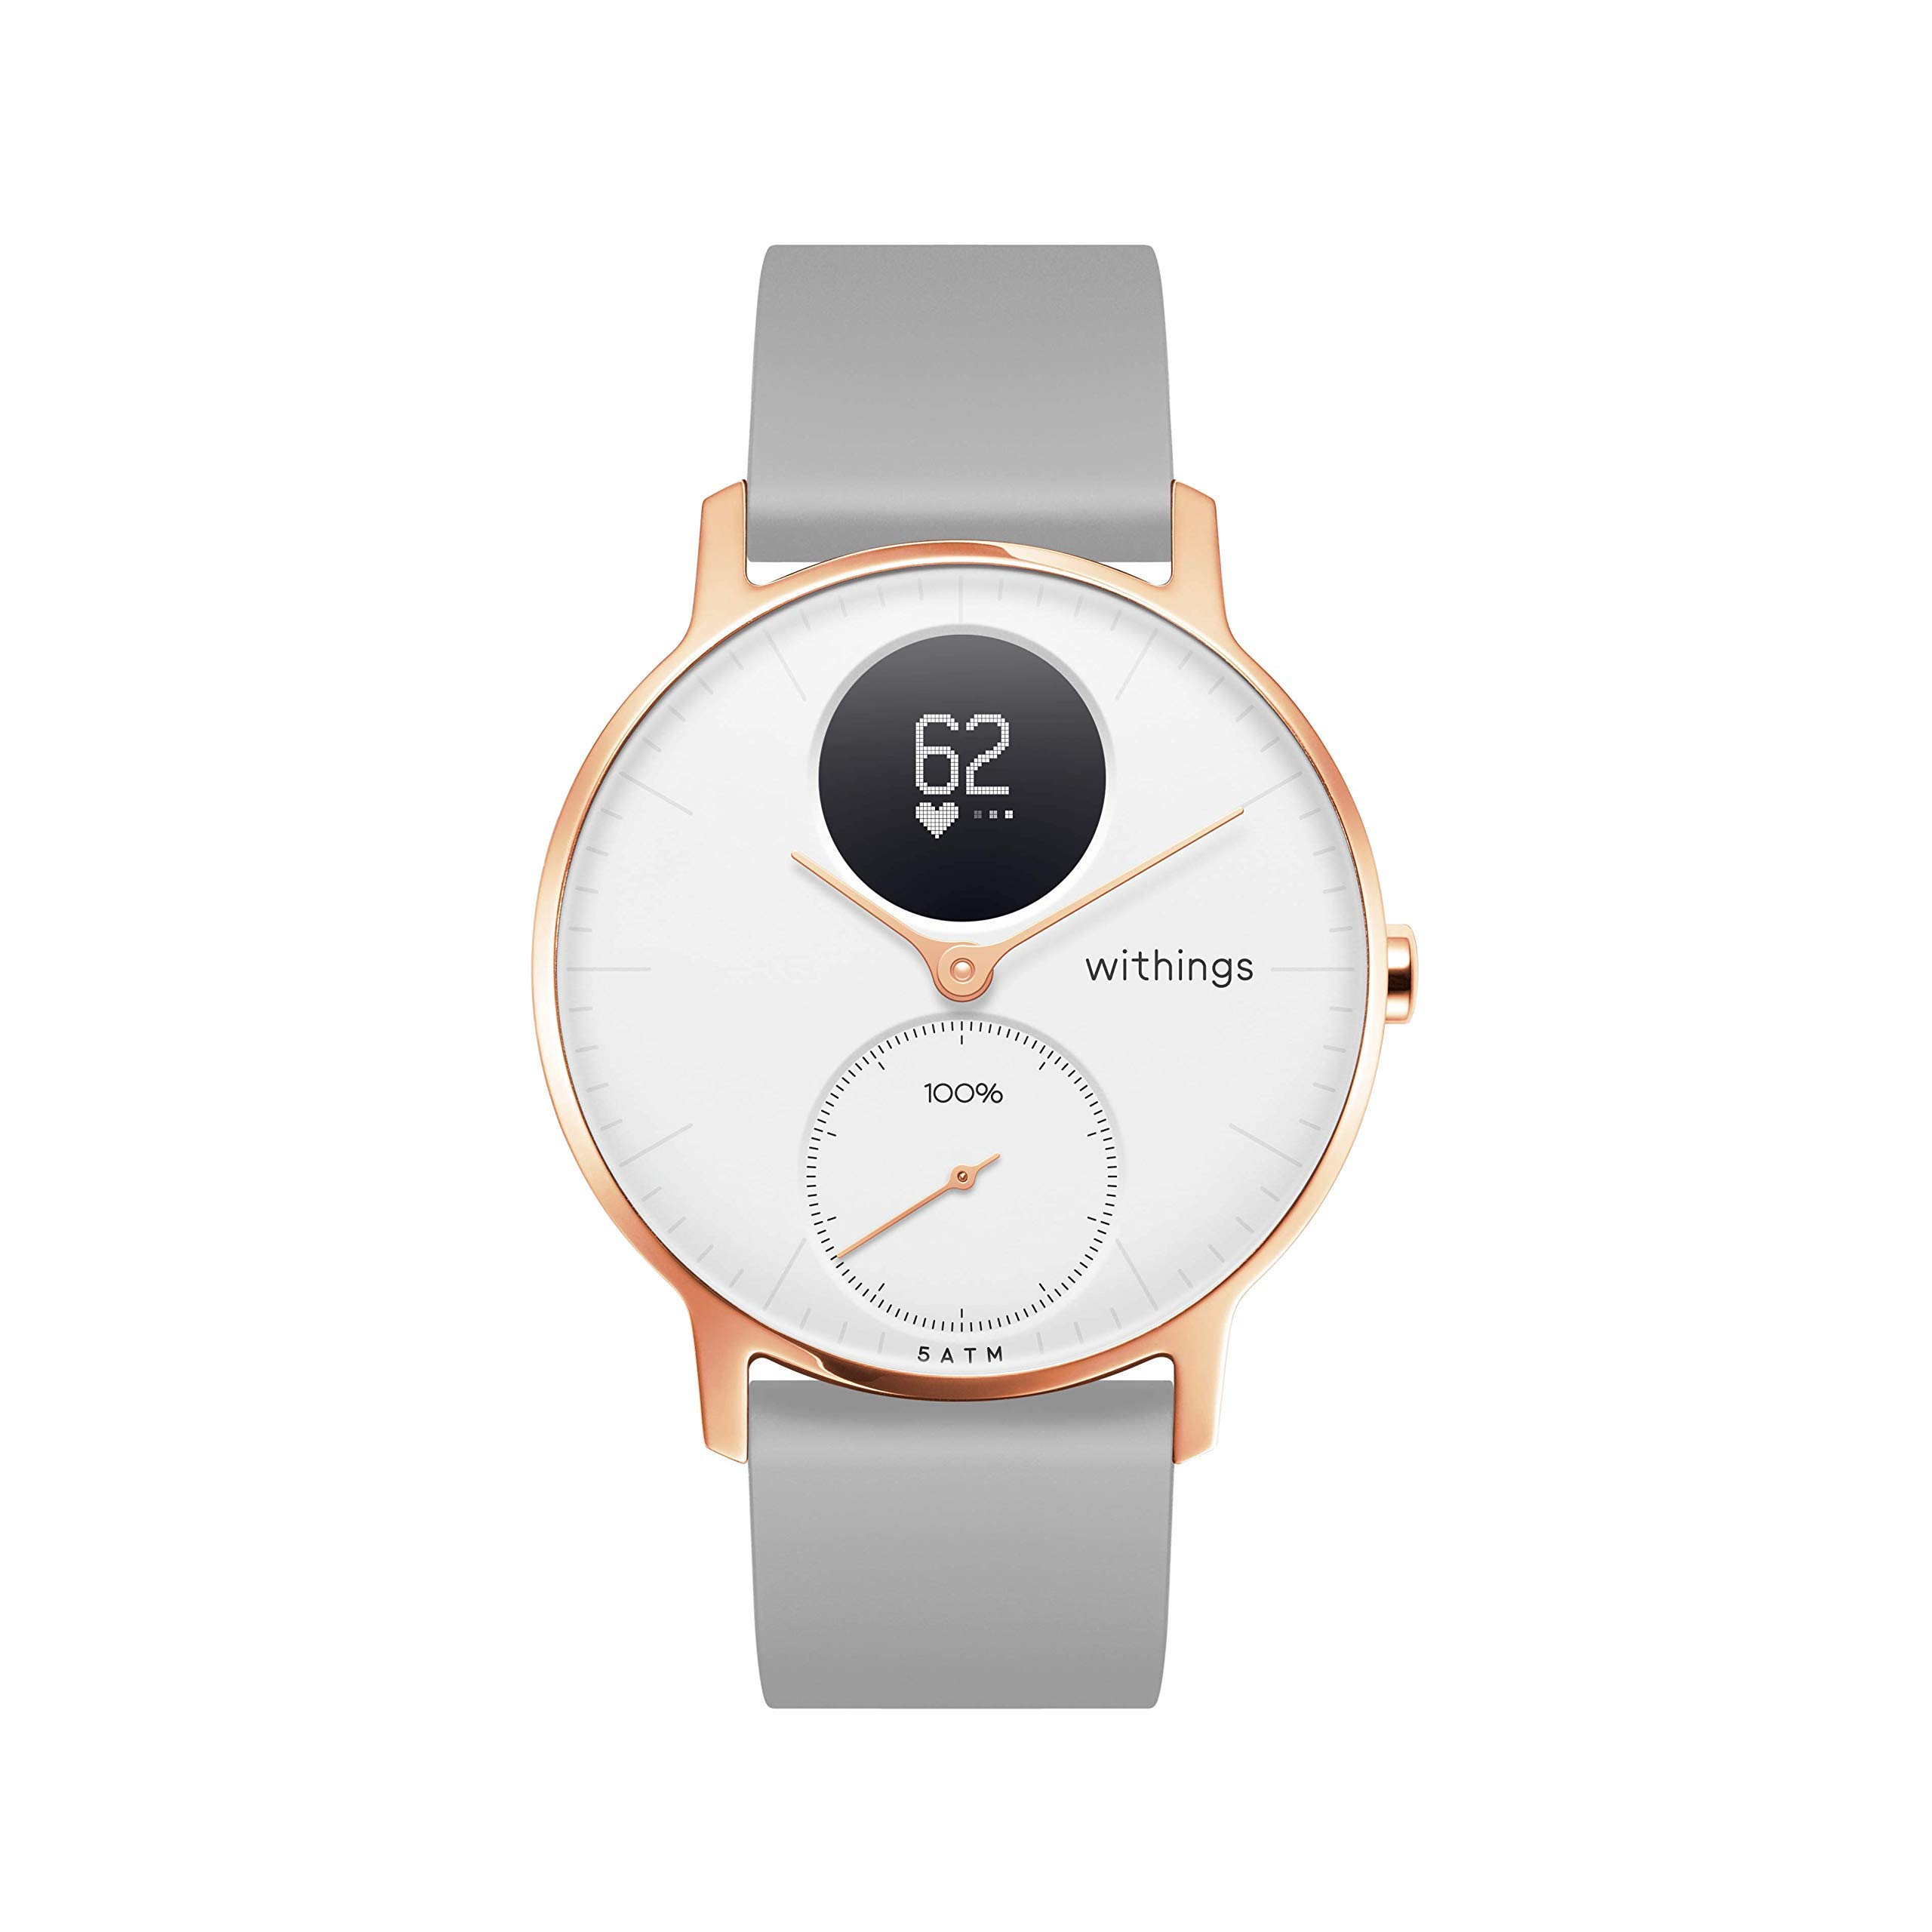 Withings / Nokia | Steel HR Hybrid Smartwatch - Activity Tracker with Connected GPS, Heart Rate Monitor, Sleep Monitor, Water Resistant Smart Watch with 25-day battery life (Renewed) by Withings (Image #1)